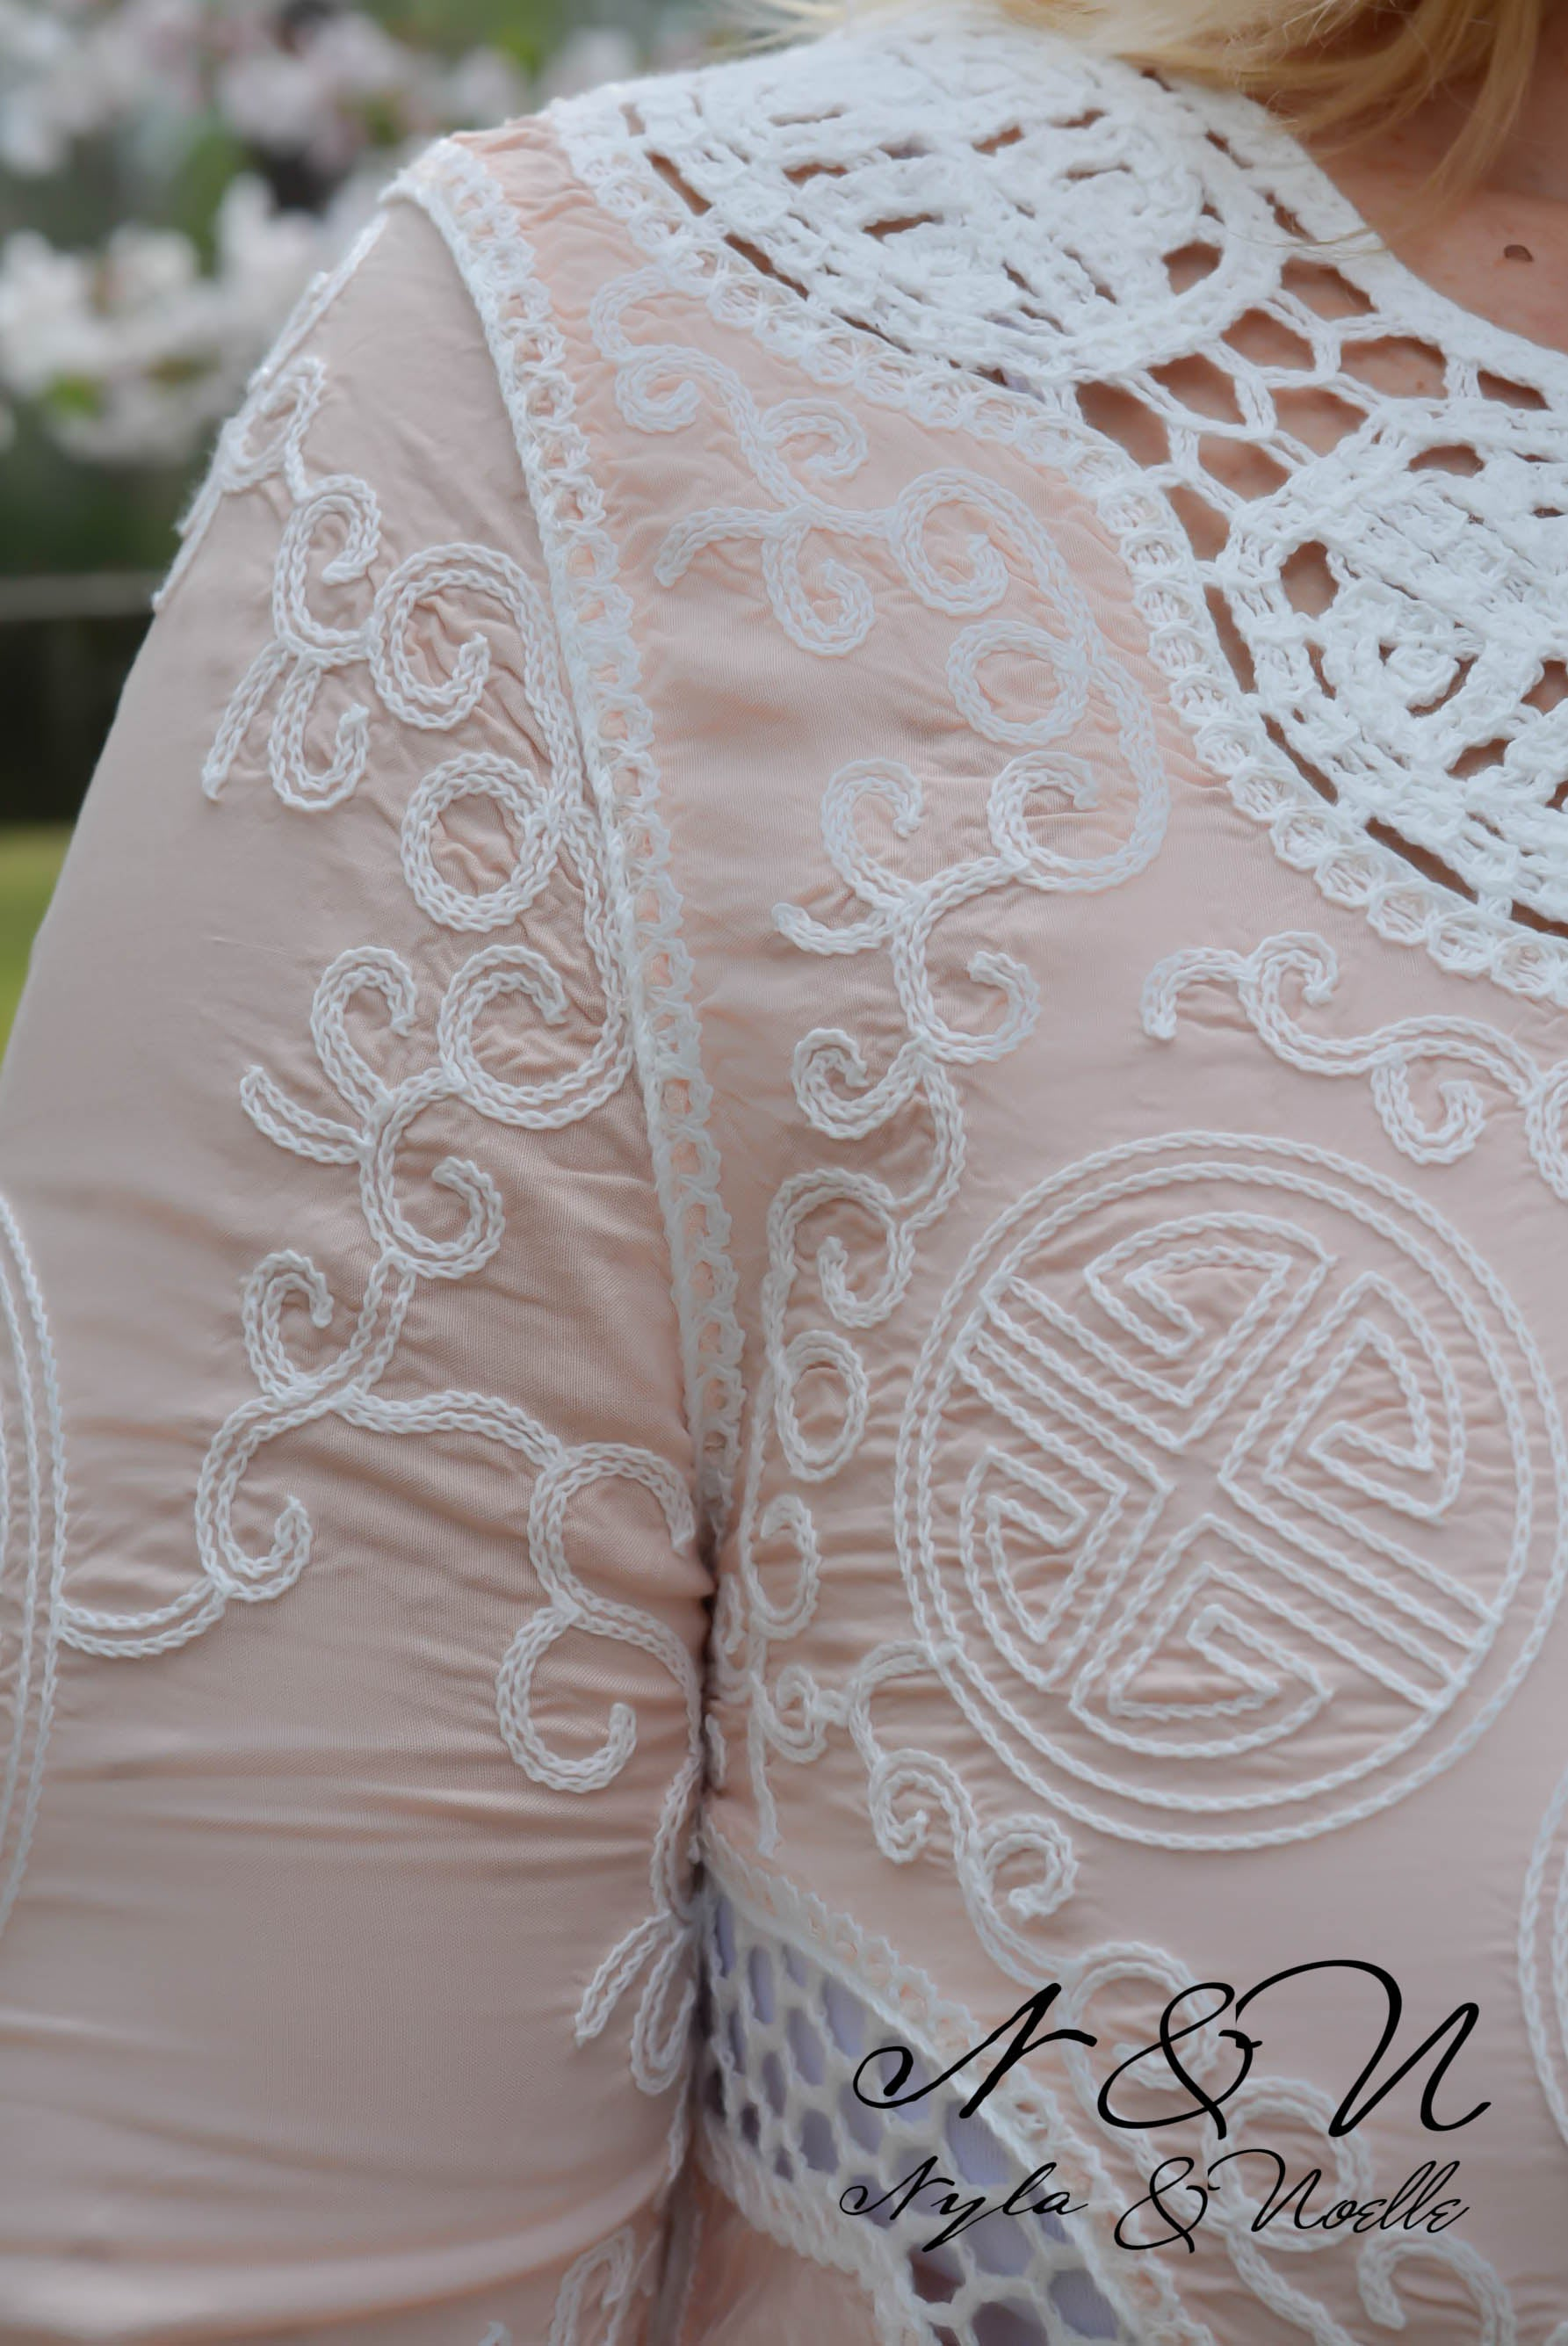 PEONY - Boho Chic Crochet Lace Panel Top